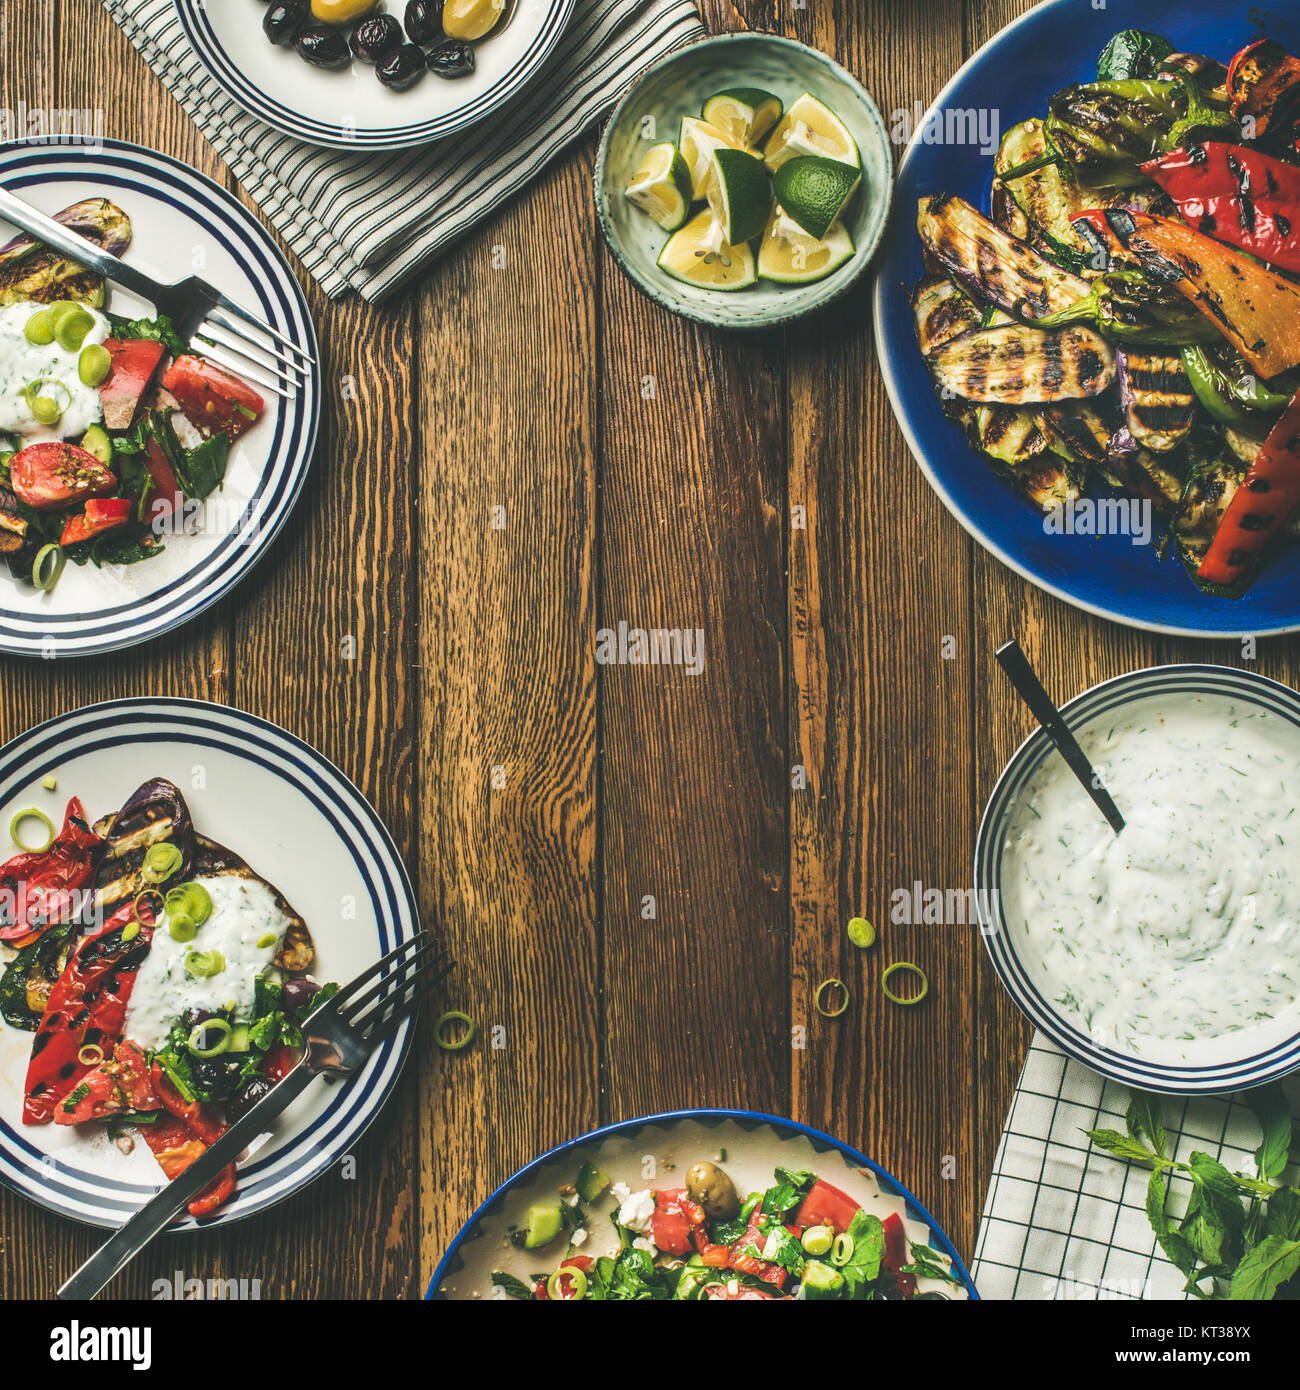 Flat-lay of healthy dinner table setting. Fresh salad, grilled vegetables with yogurt and dill sauce, pickled olives, - Stock Image